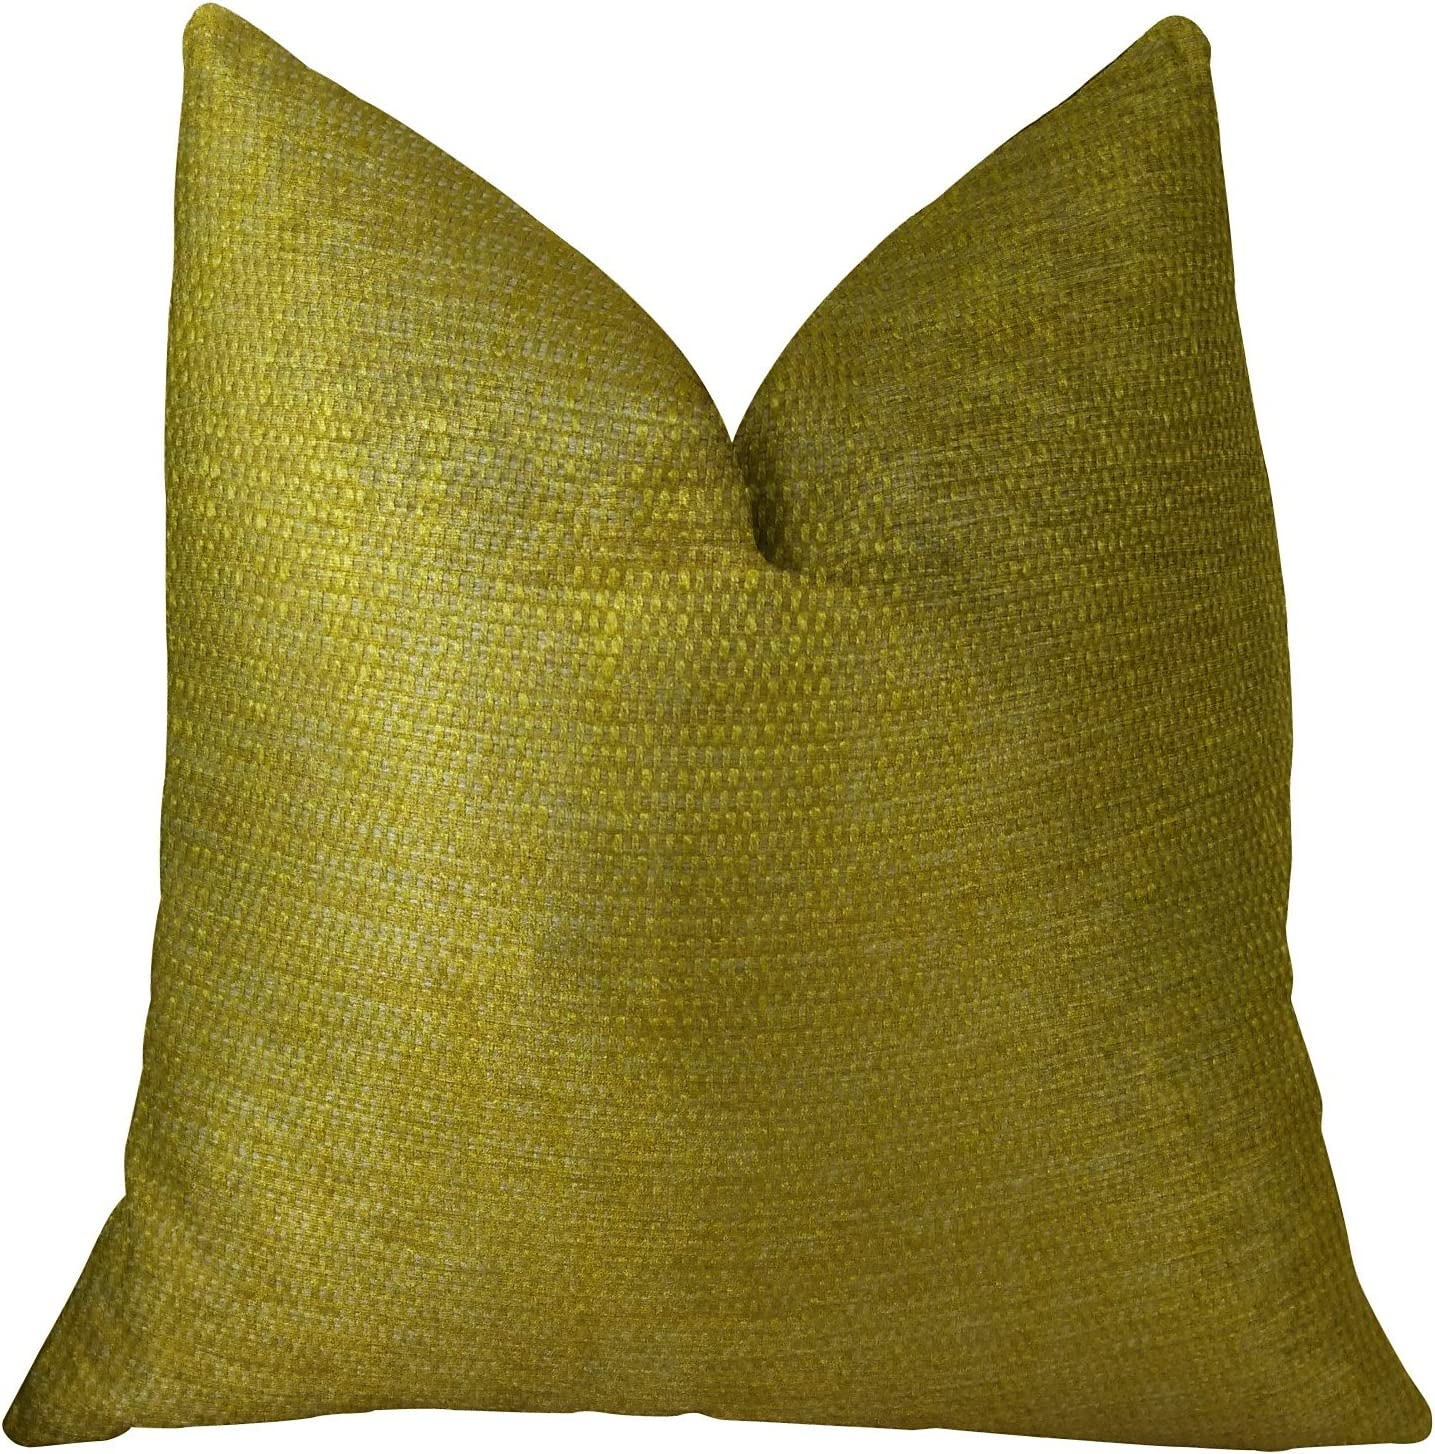 Plutus Brands Lemon Curry Seasonal Wrap Introduction Handmade Pillow x All stores are sold 20